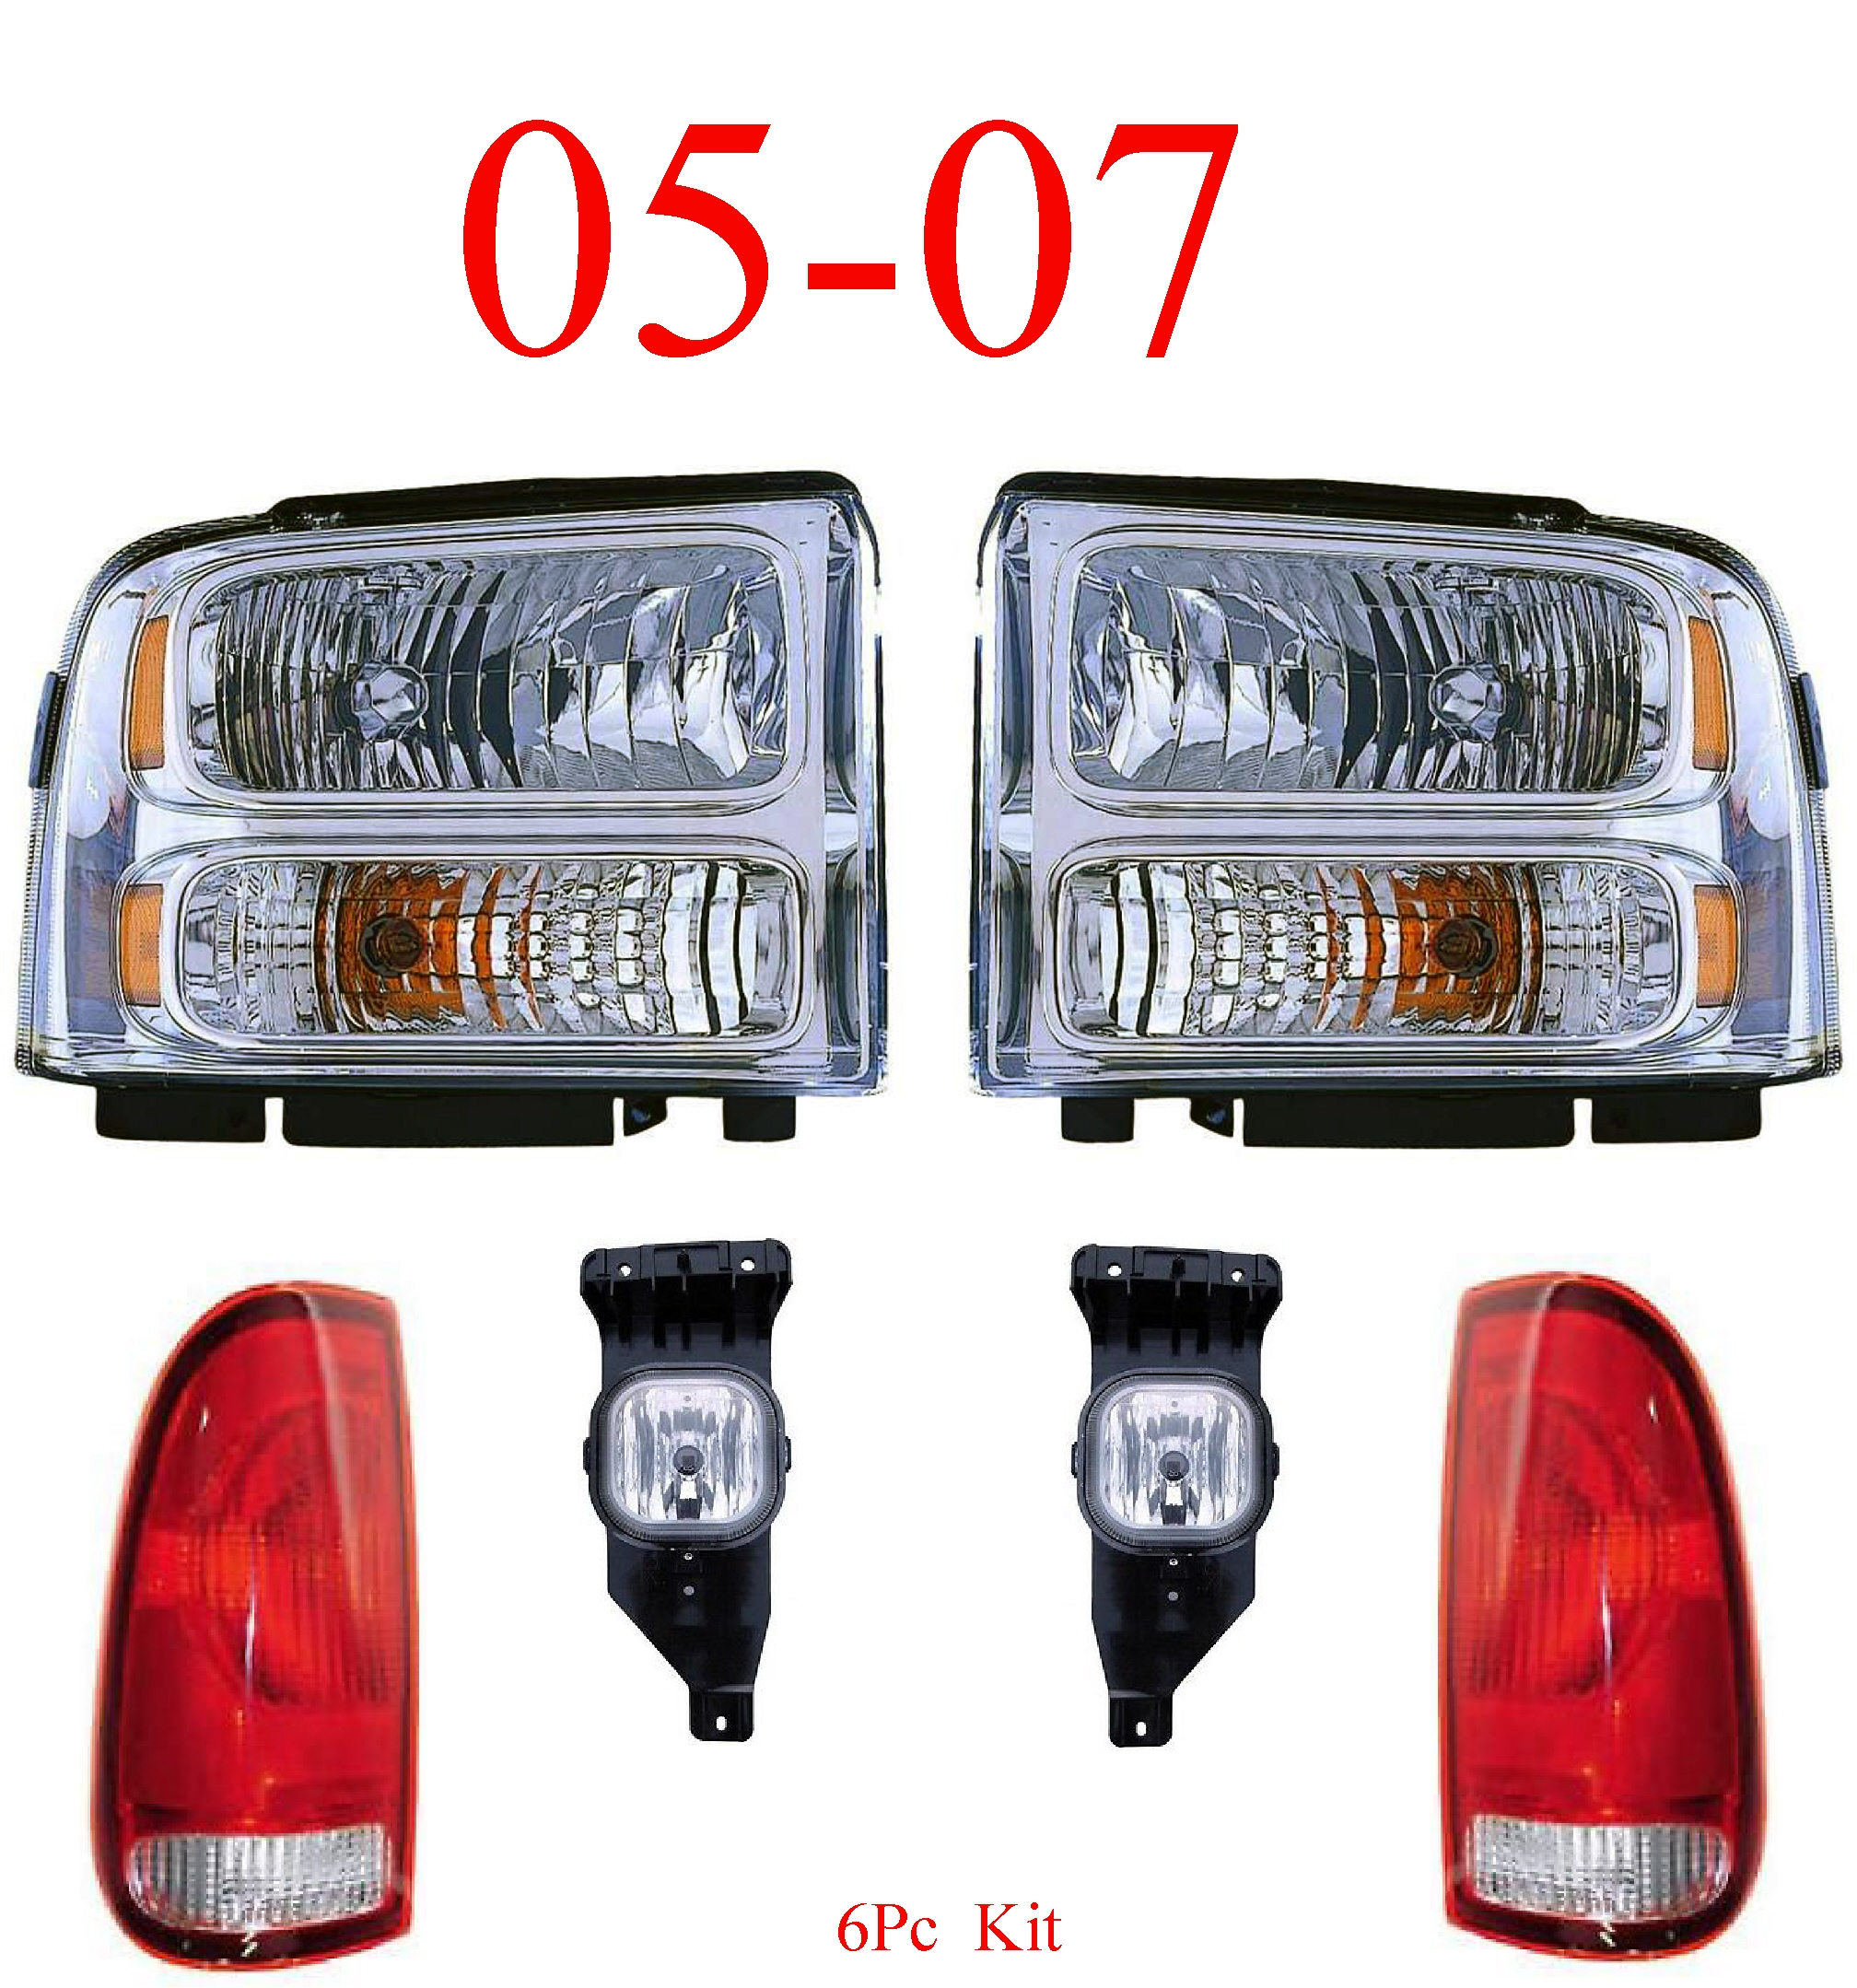 05-07 Ford Super Duty 6Pc Head, Fog & Tail Light Kit Chrome